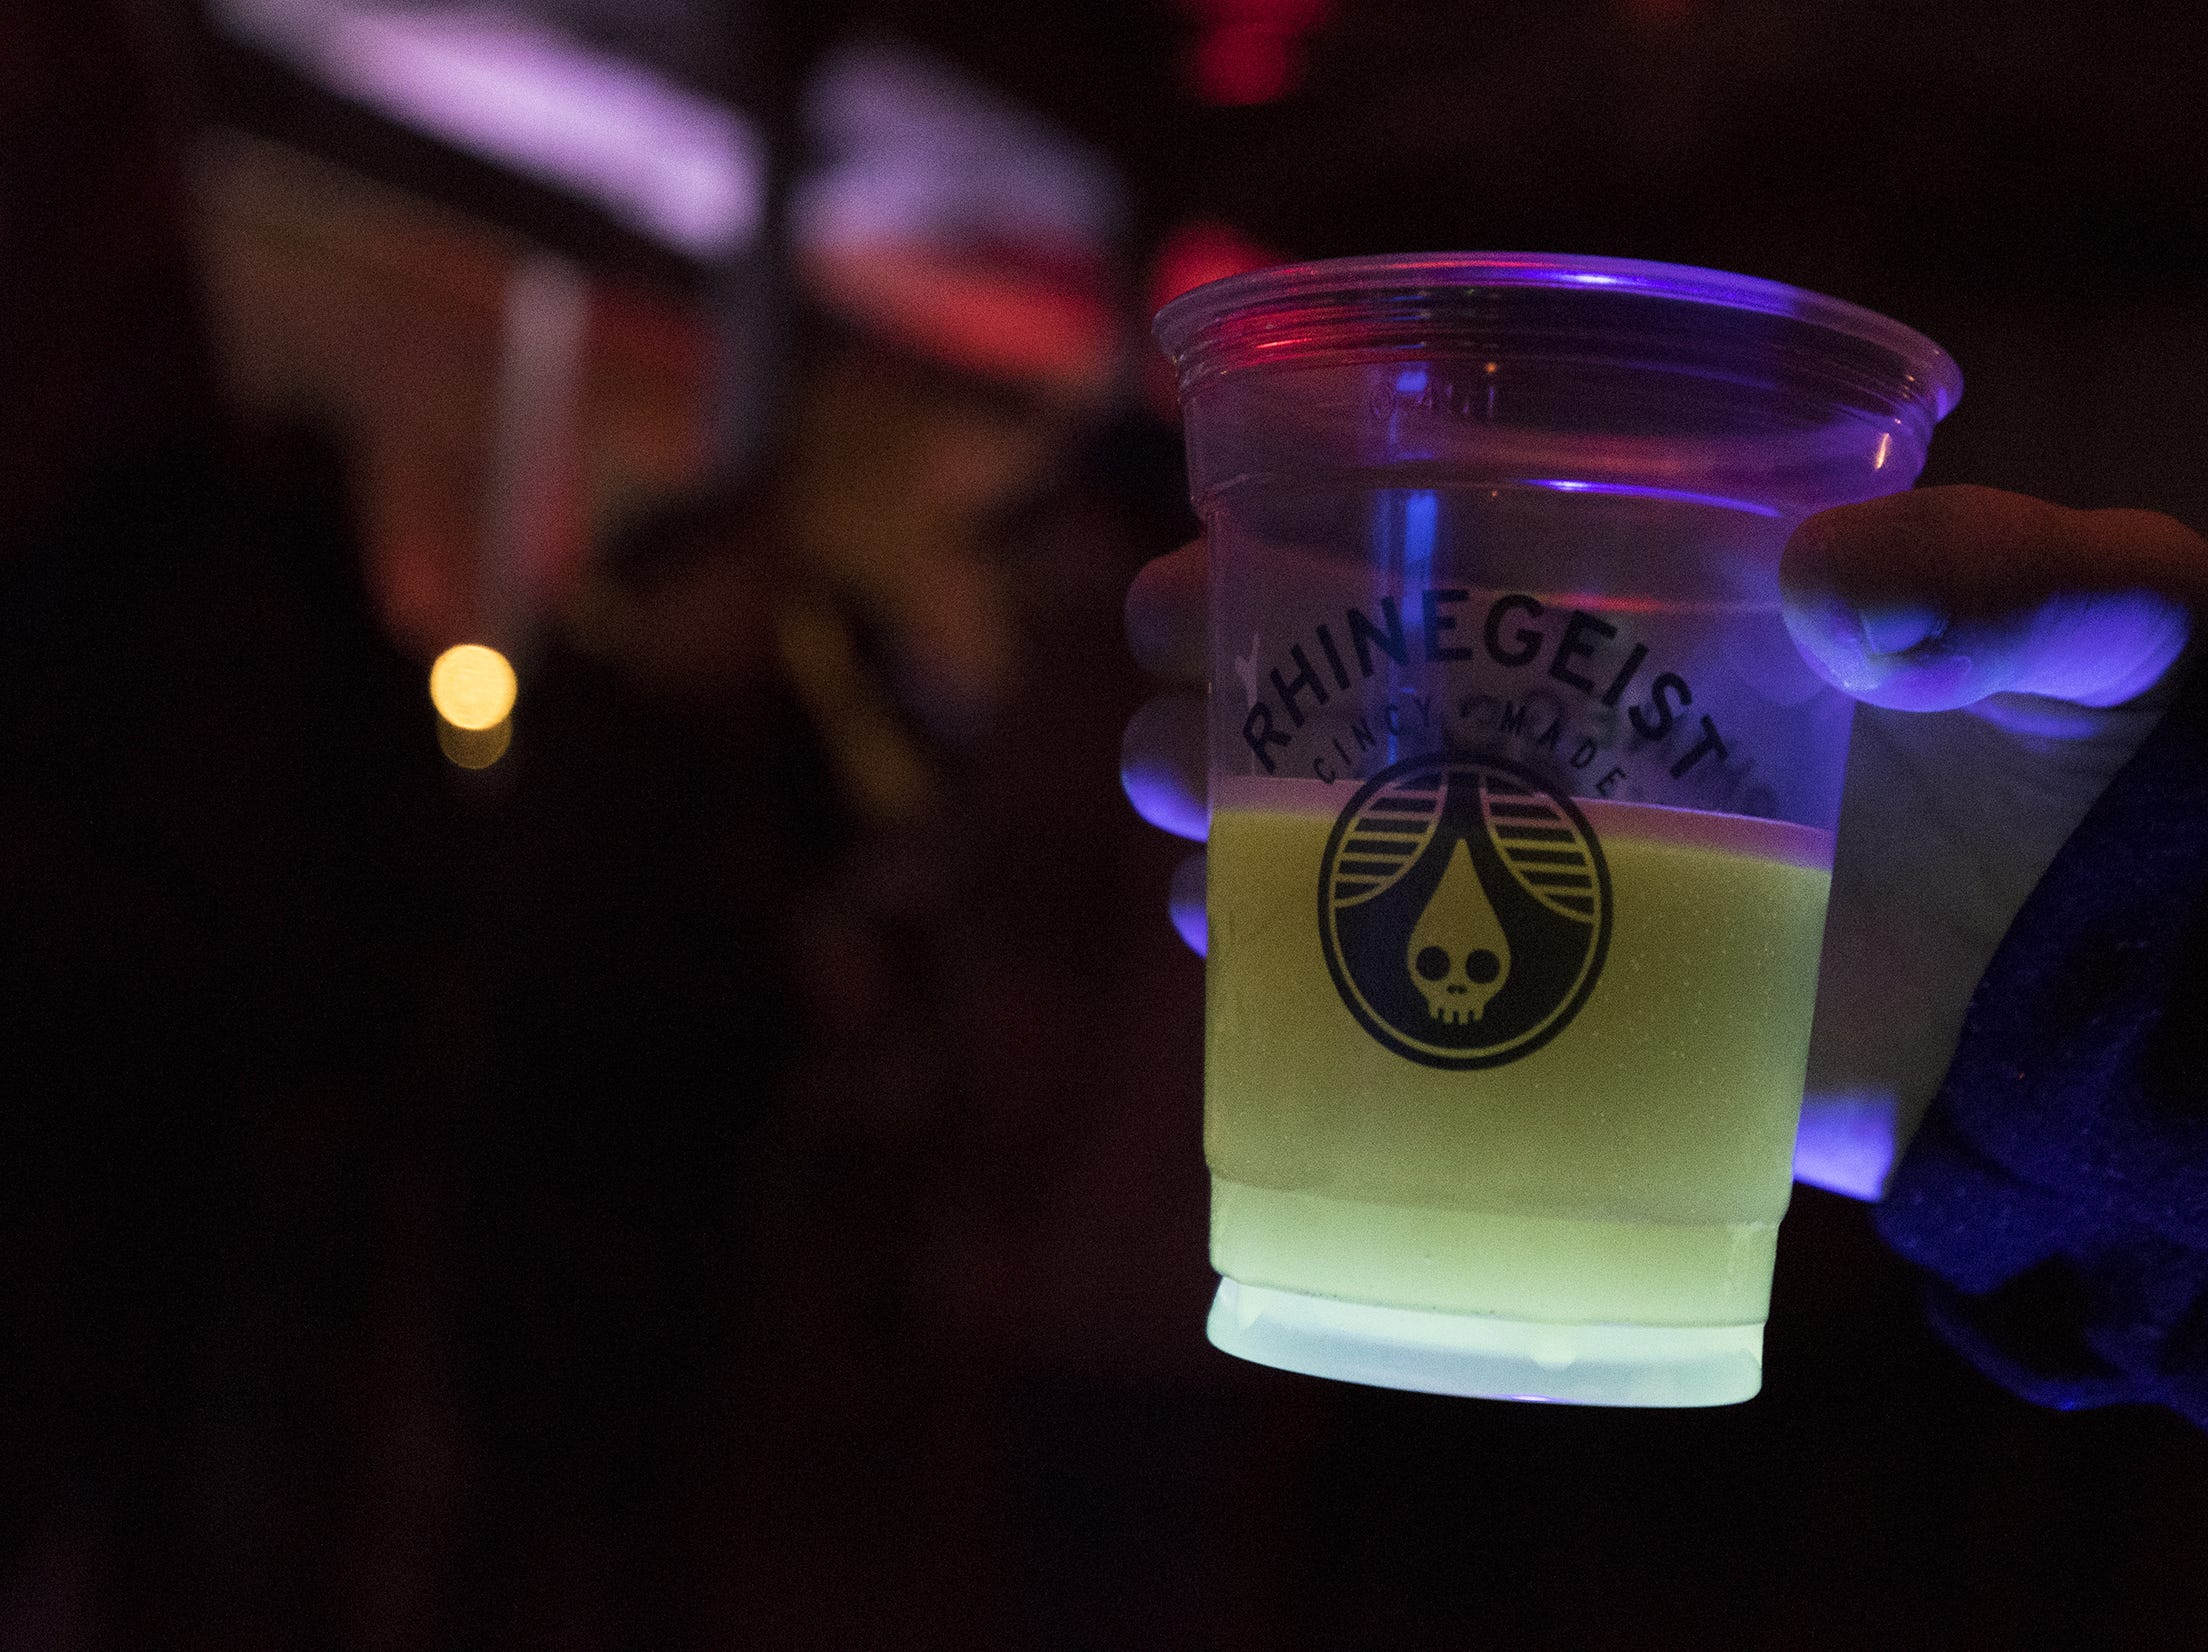 A beer is illuminated under black light at Rhinegeist's tropical disco.